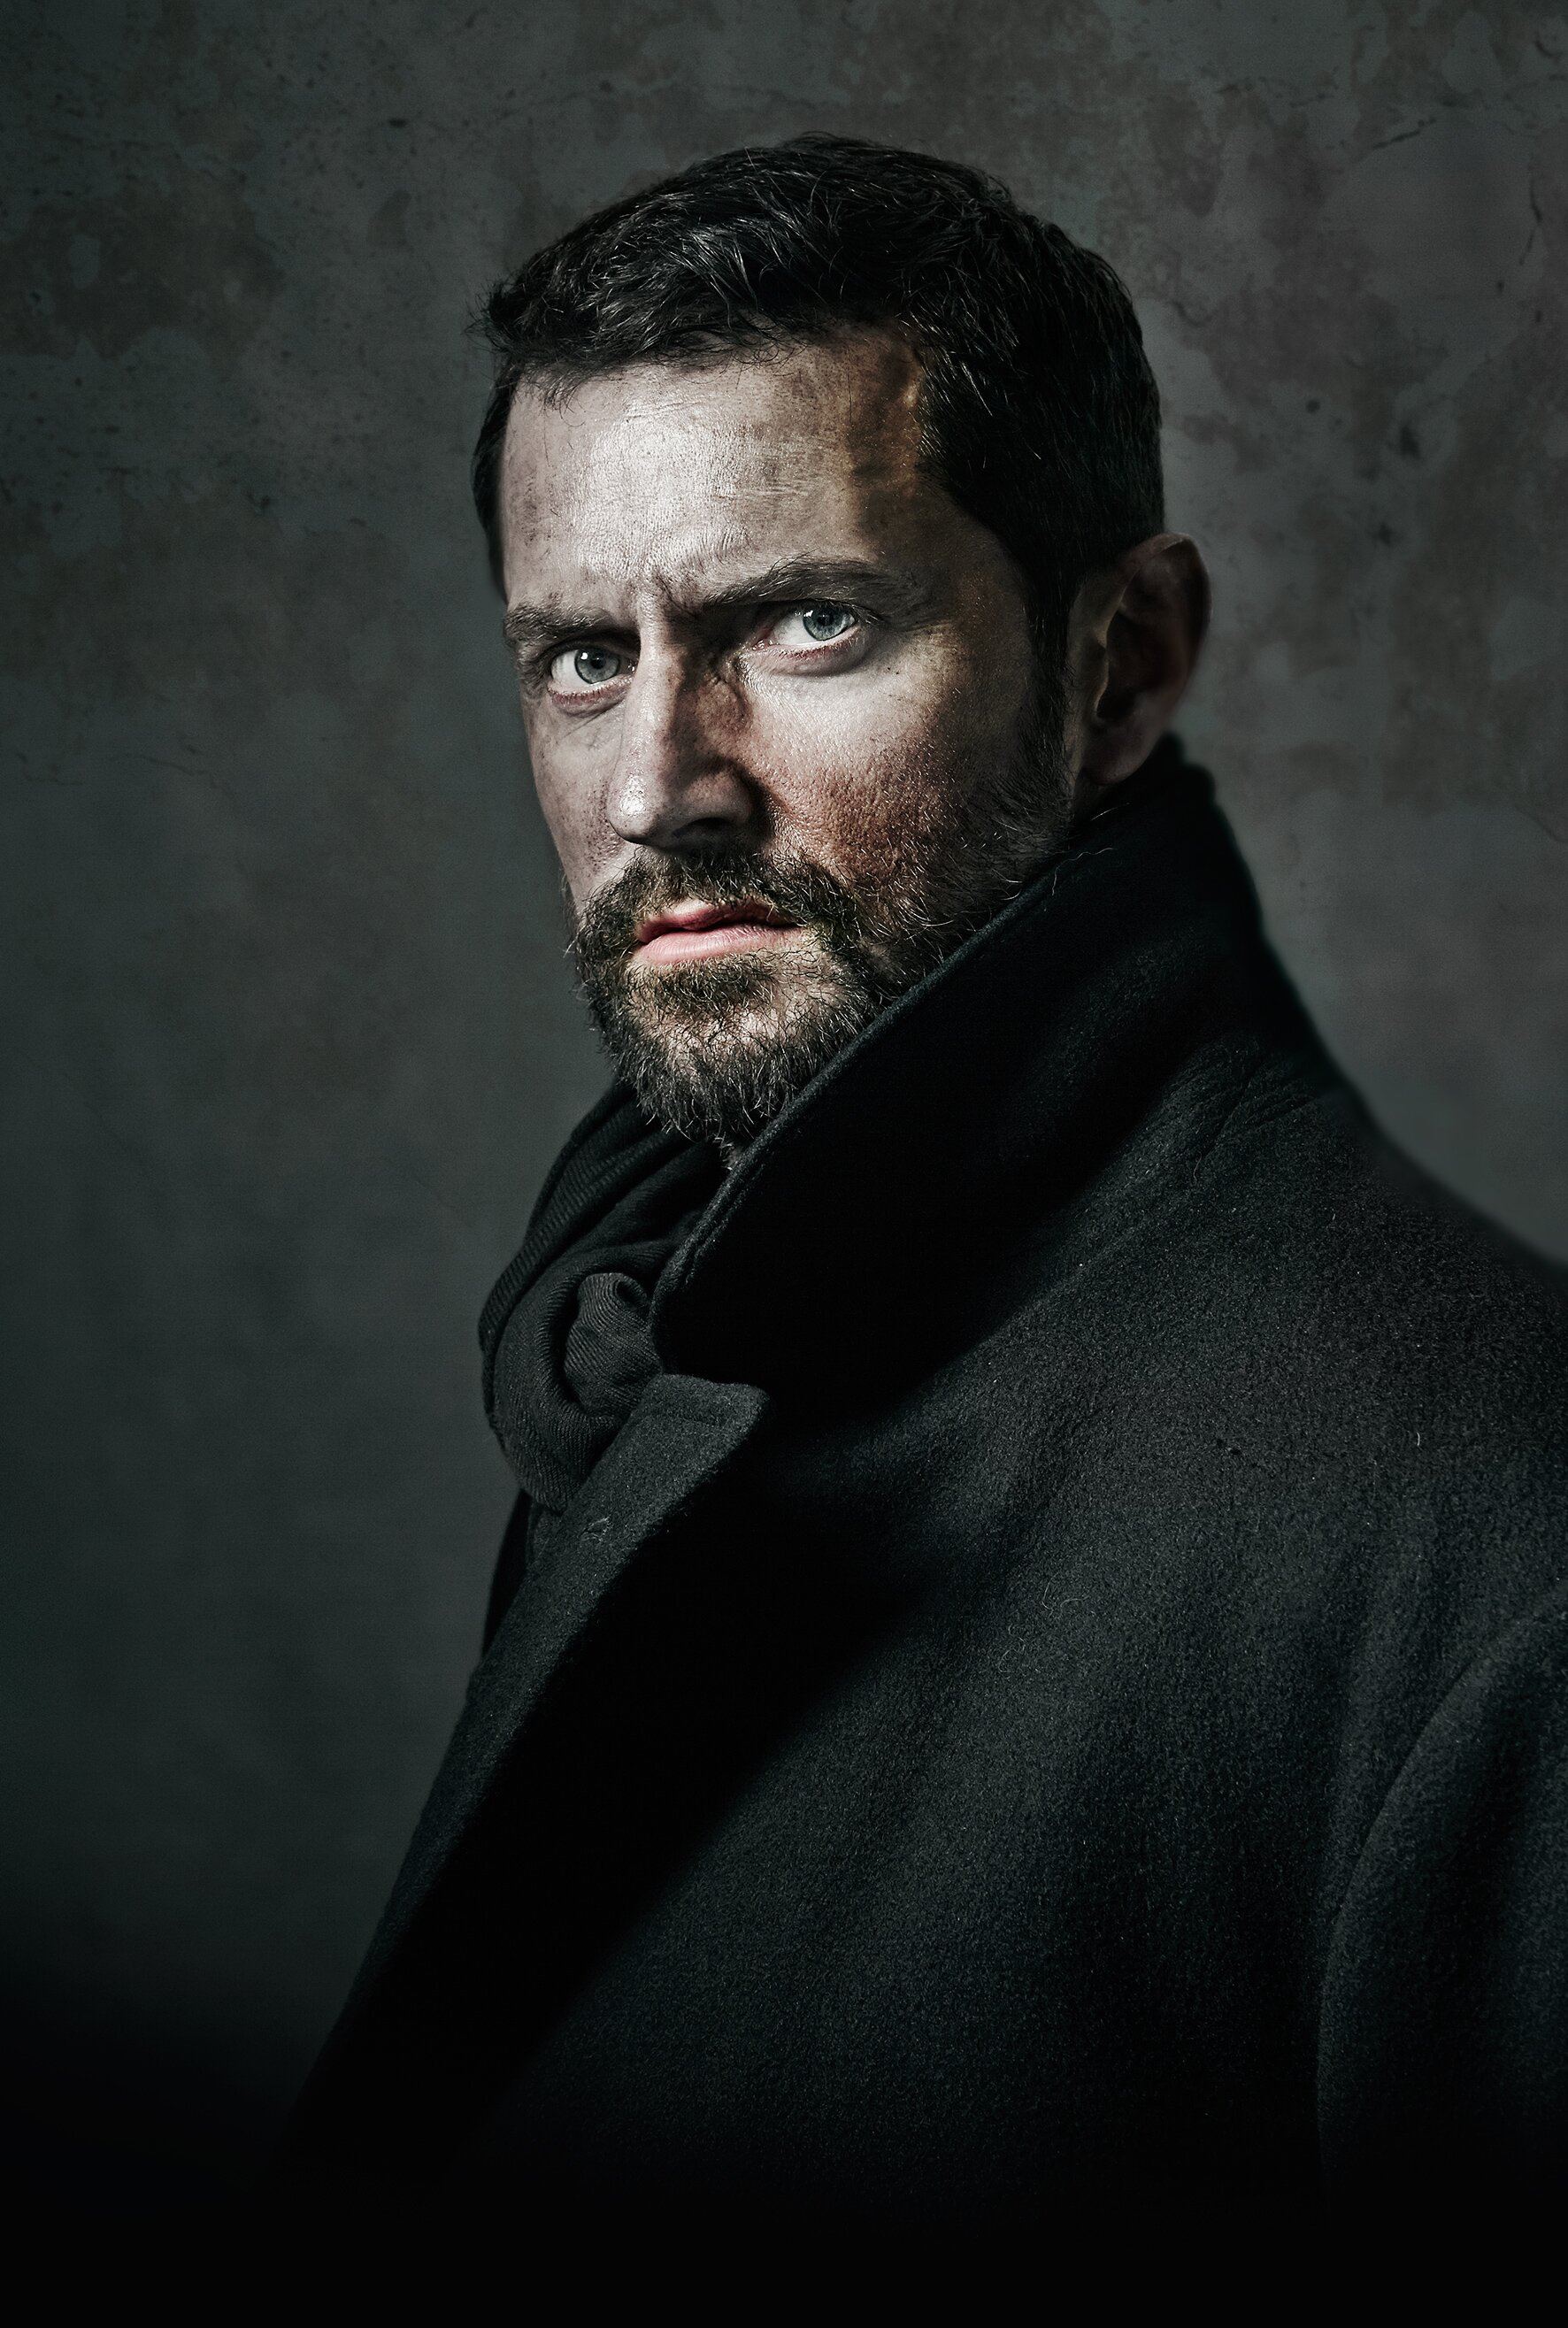 john proctor as the ultimate hero in the crucible by arthur miller Who once starred on broadway as the morally agonized but ultimately righteous hero john proctor in arthur miller's the crucible john proctor is portrayed in the crucible as a tragic hero.